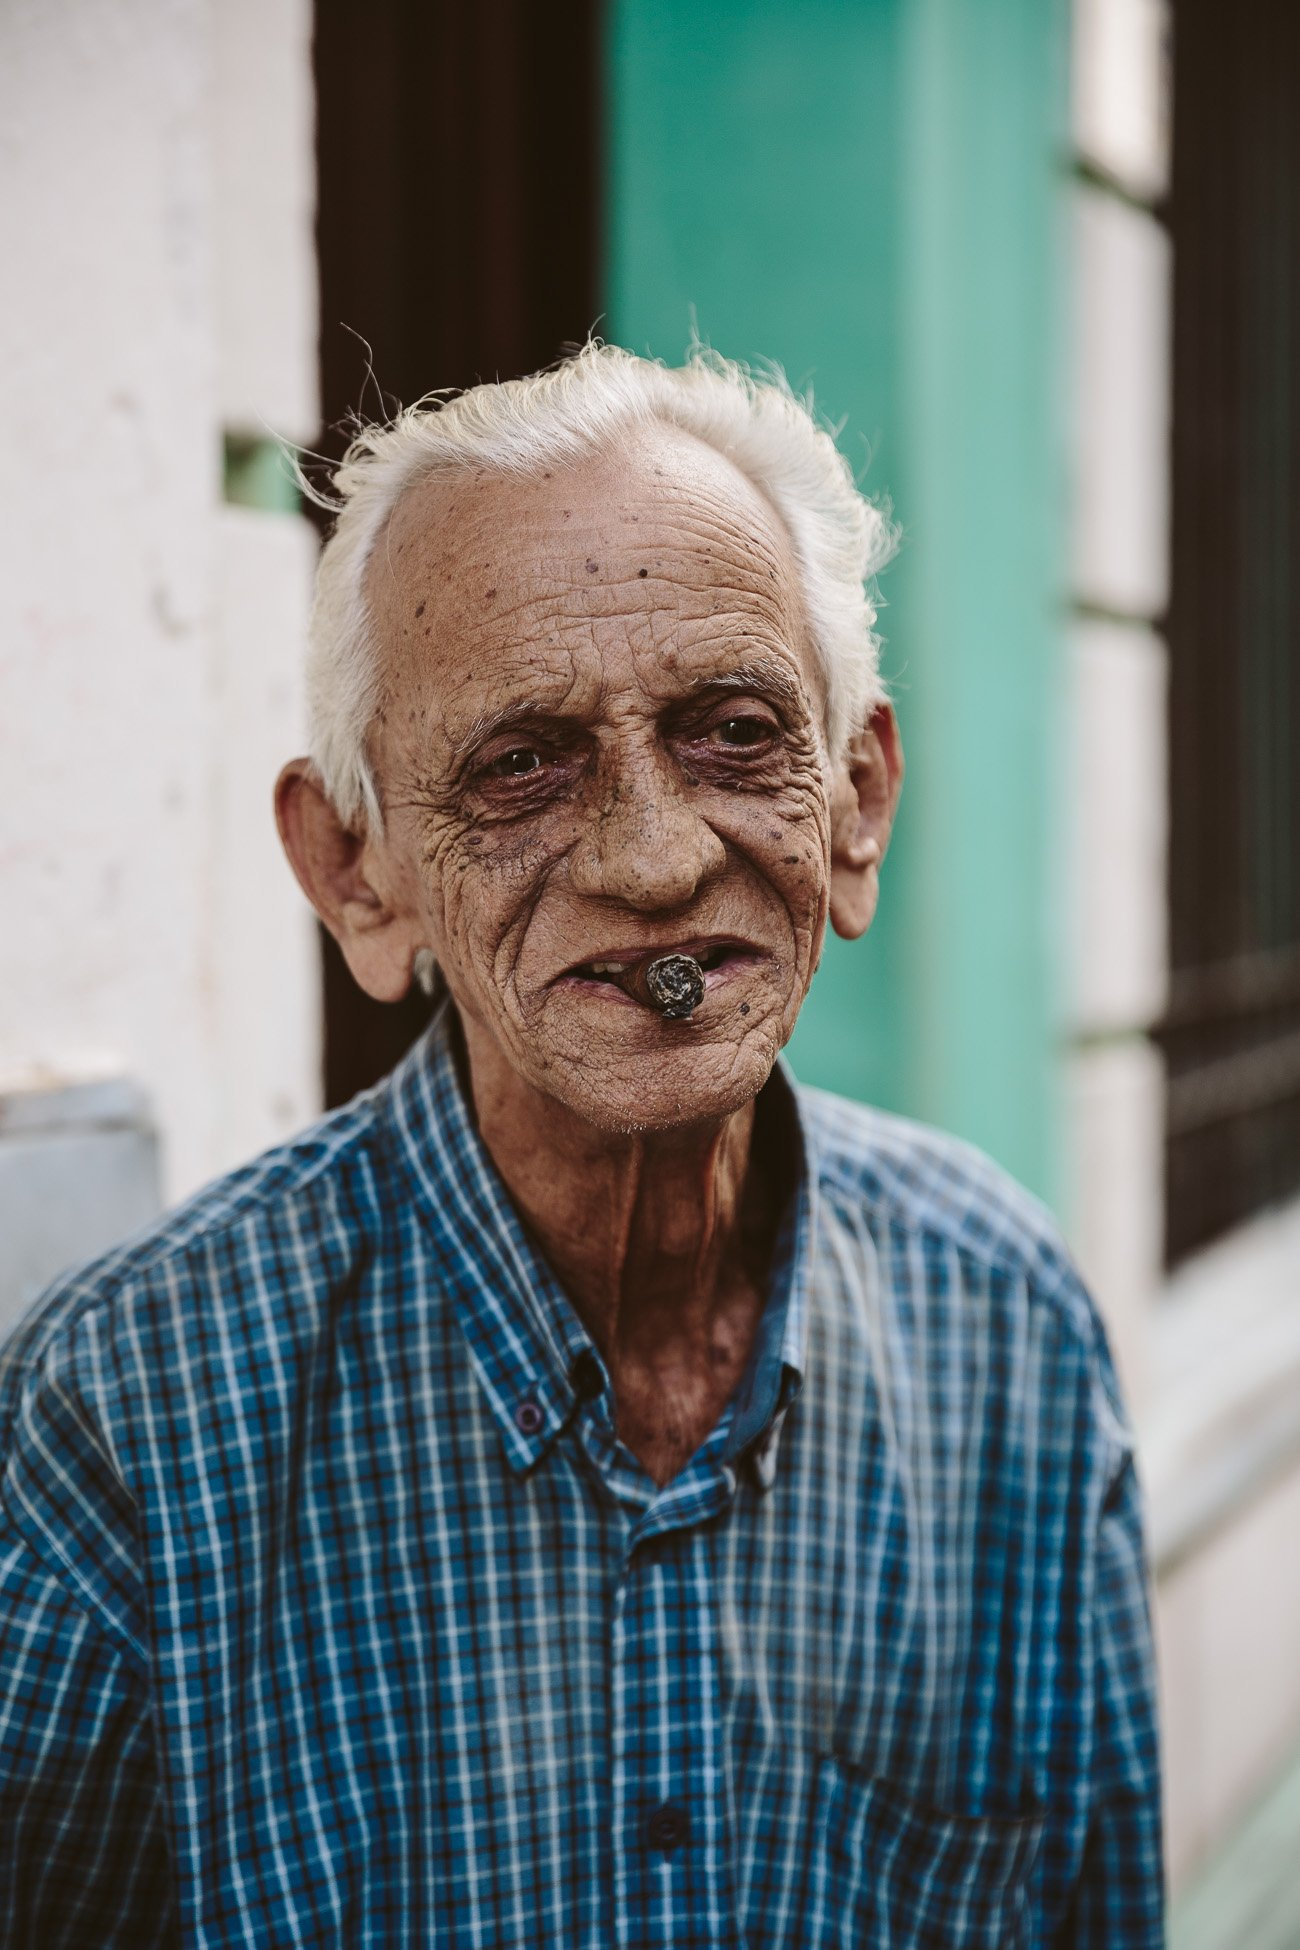 A man smoking a cigar in Havana Cuba